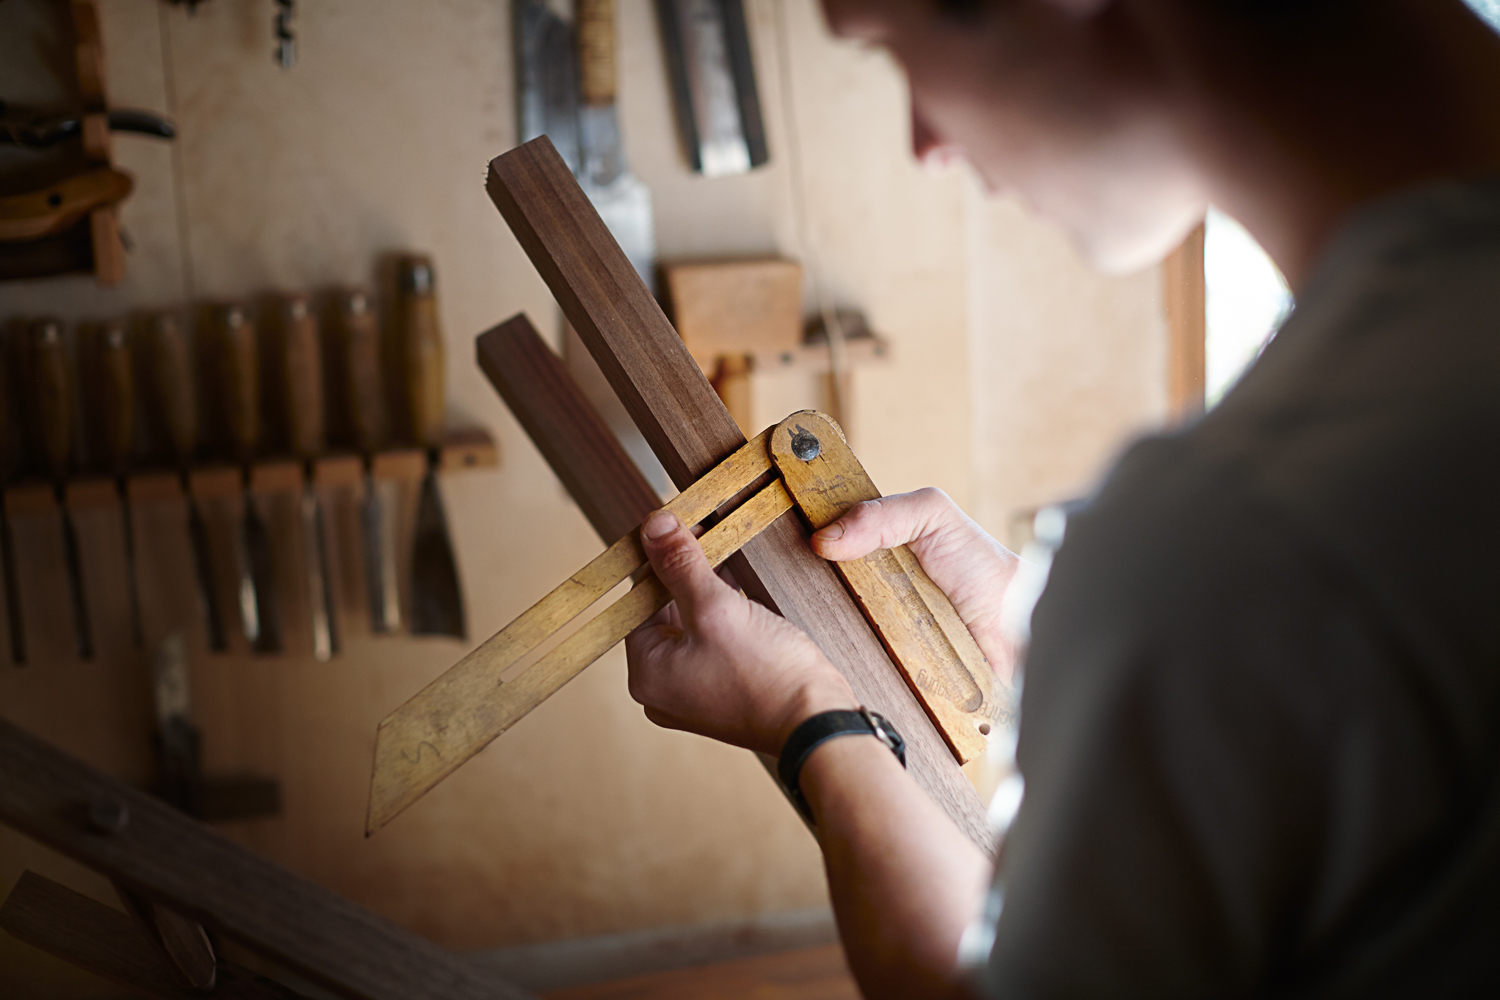 person working with wood tools